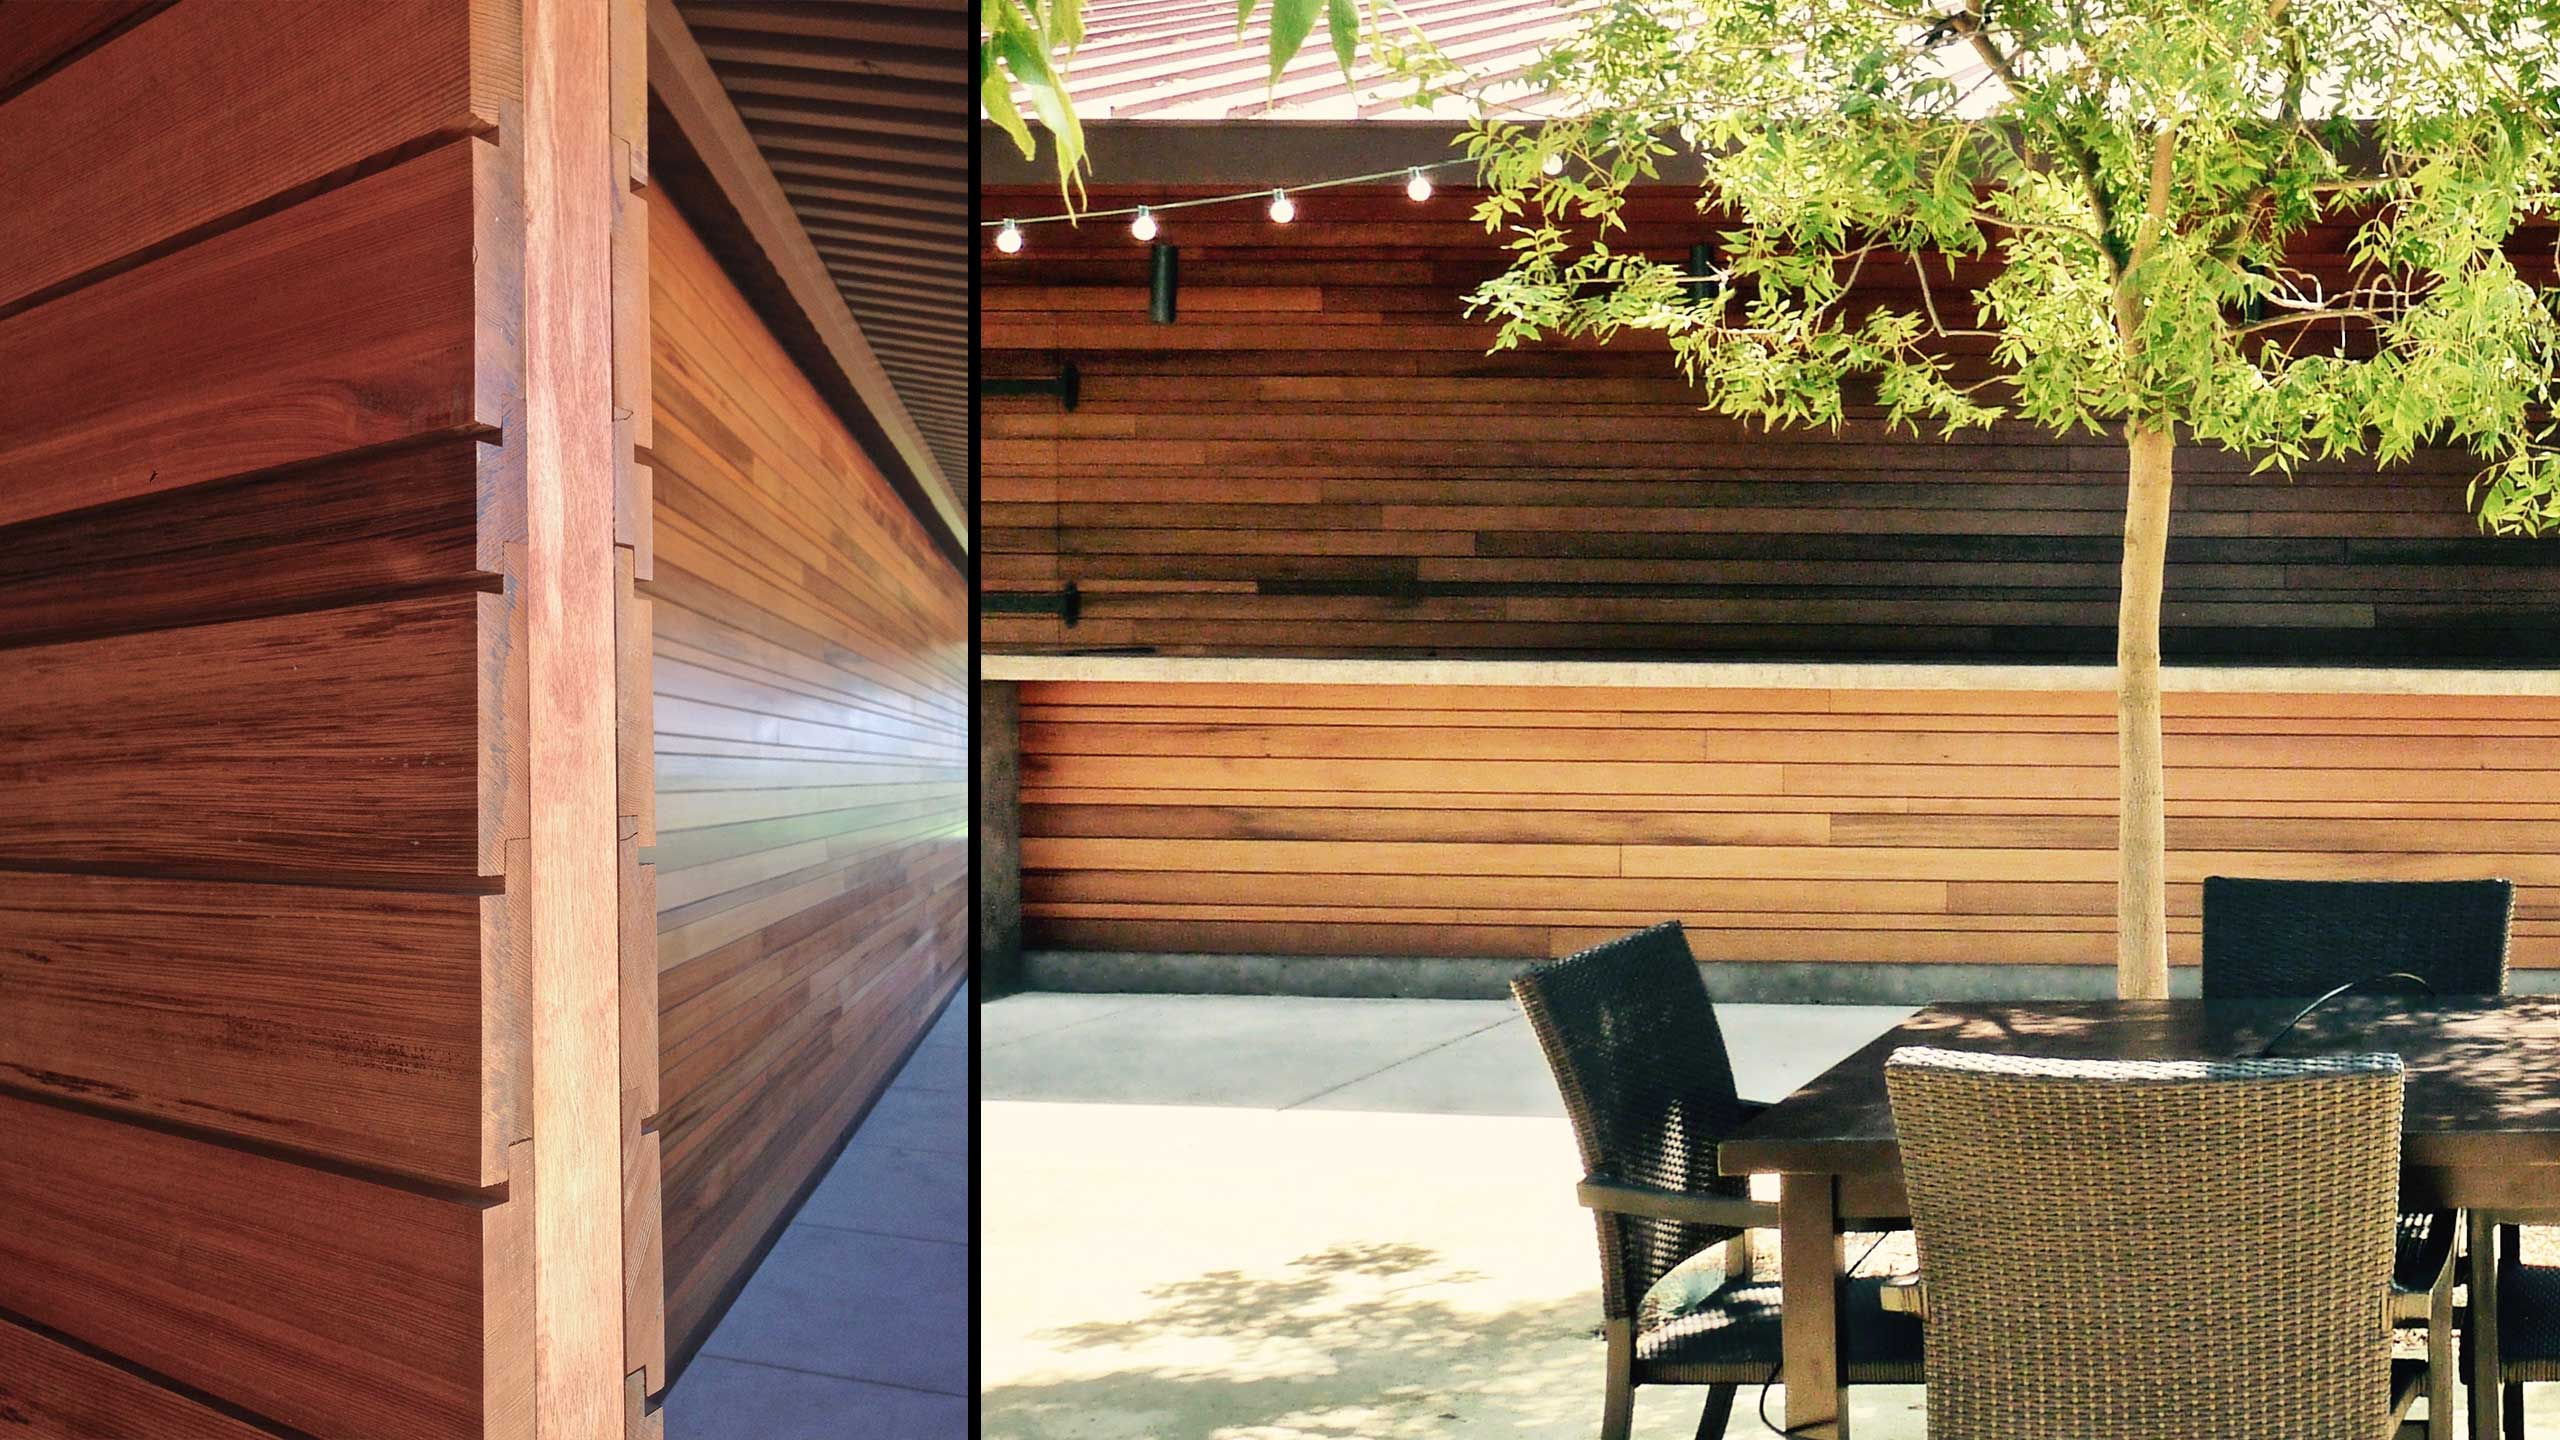 Winery-Architecture-Healdsburg-reclaimed-wood